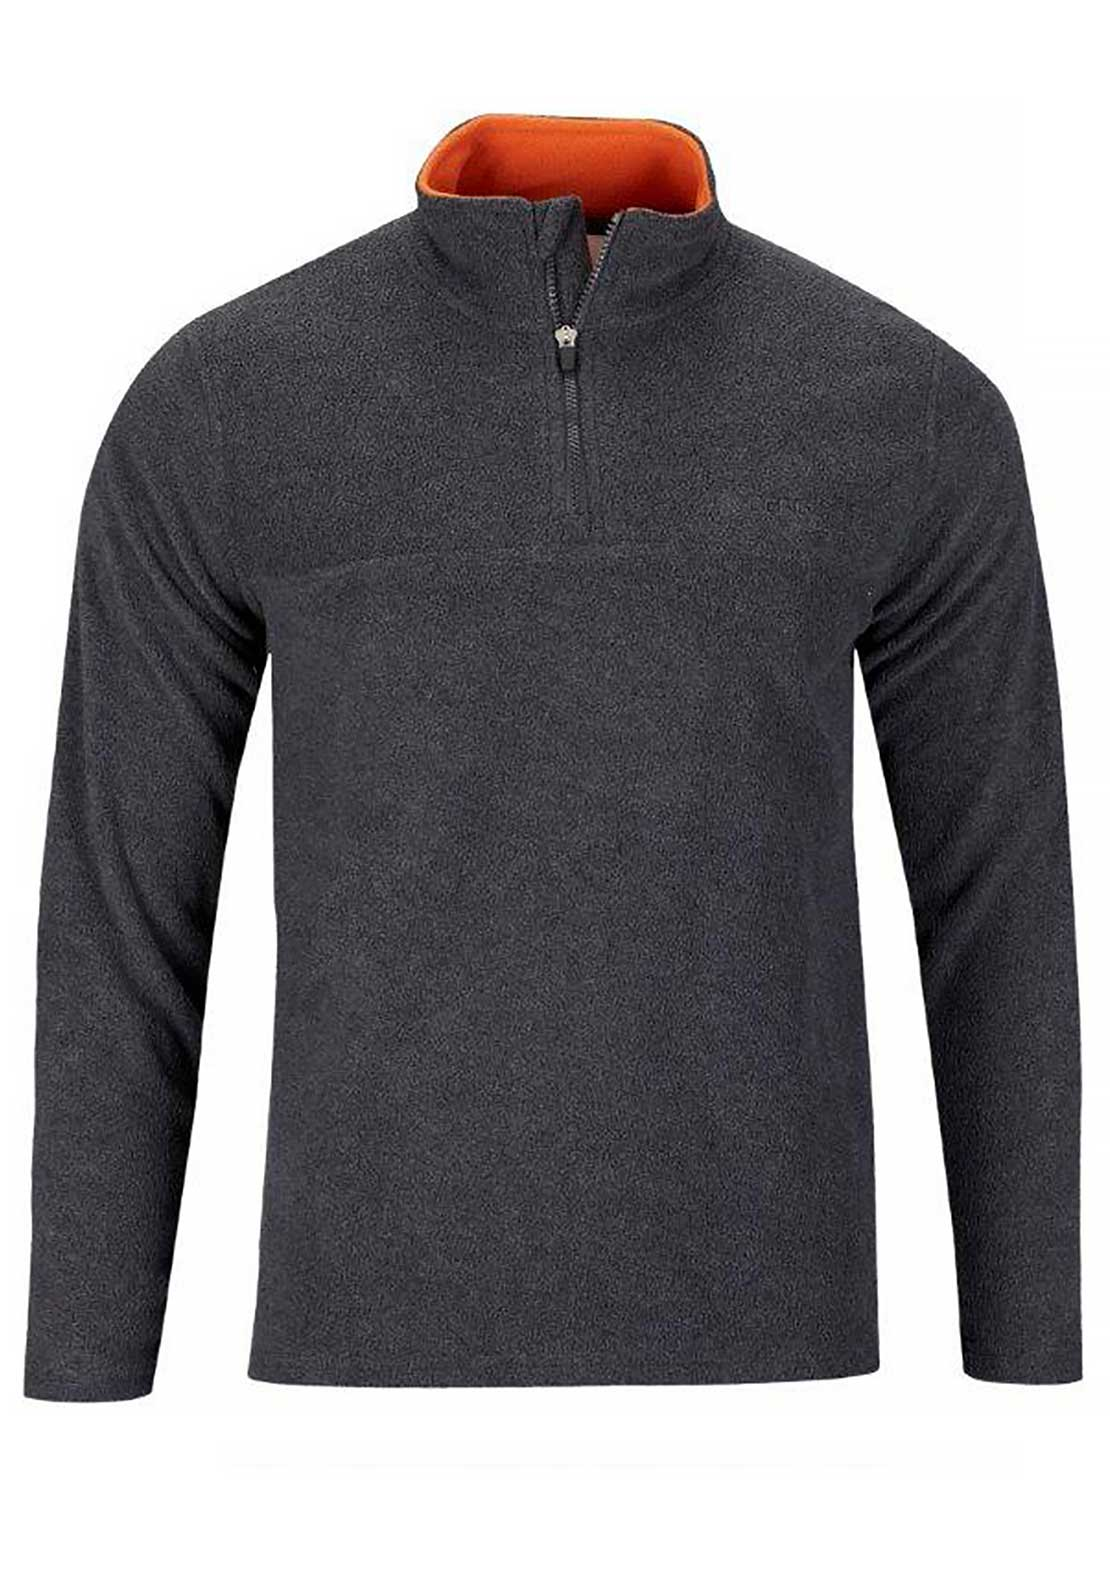 Berg Outdoor Mens Kluane Fleece, Dark Grey